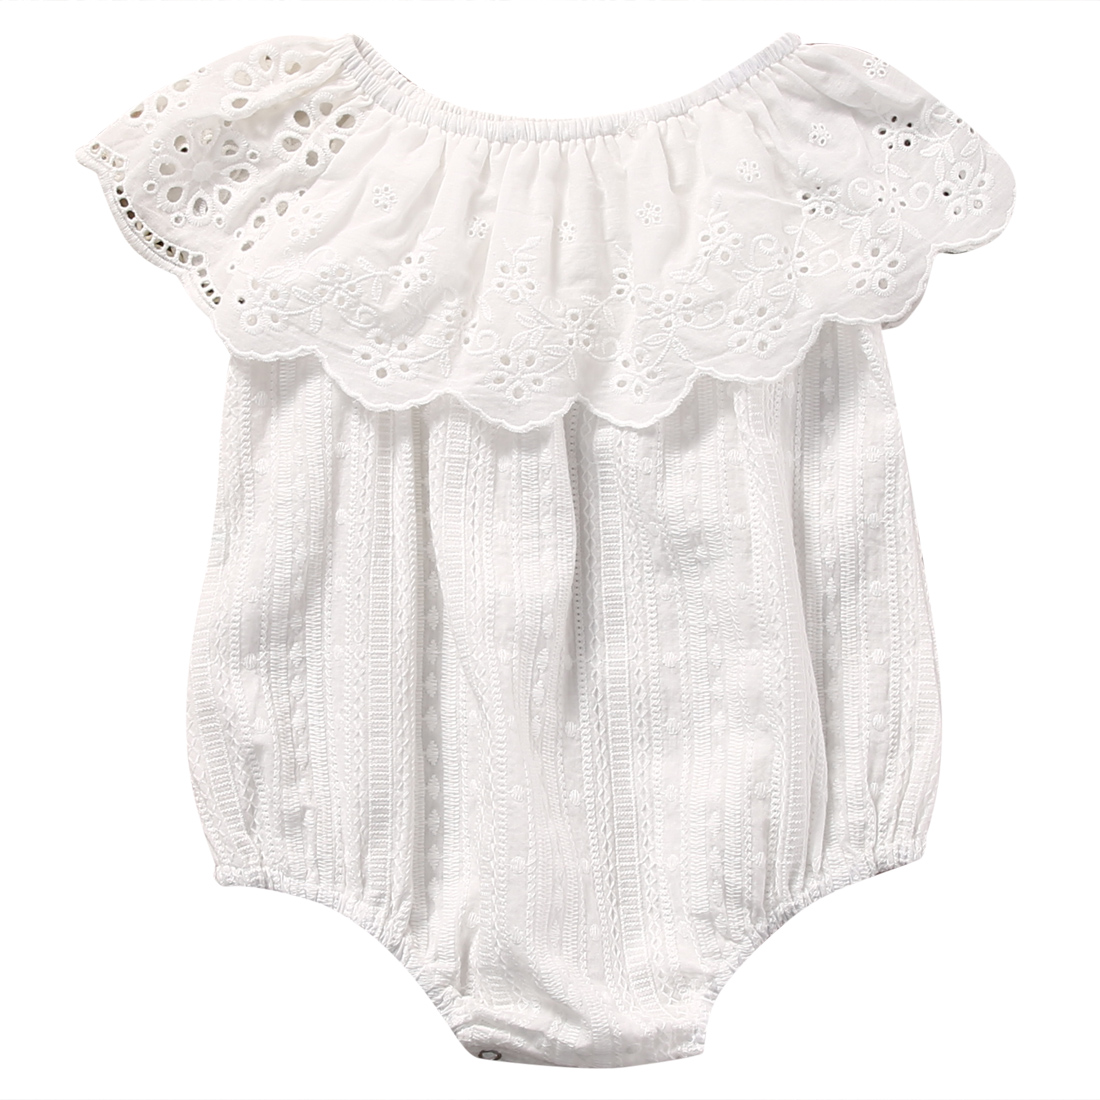 2017 Summer Newborn Baby Girl White Lace Romper Jumpsuit Floral Infant Clothes Outfit Sunsuit welder machine plasma cutter welder mask for welder machine